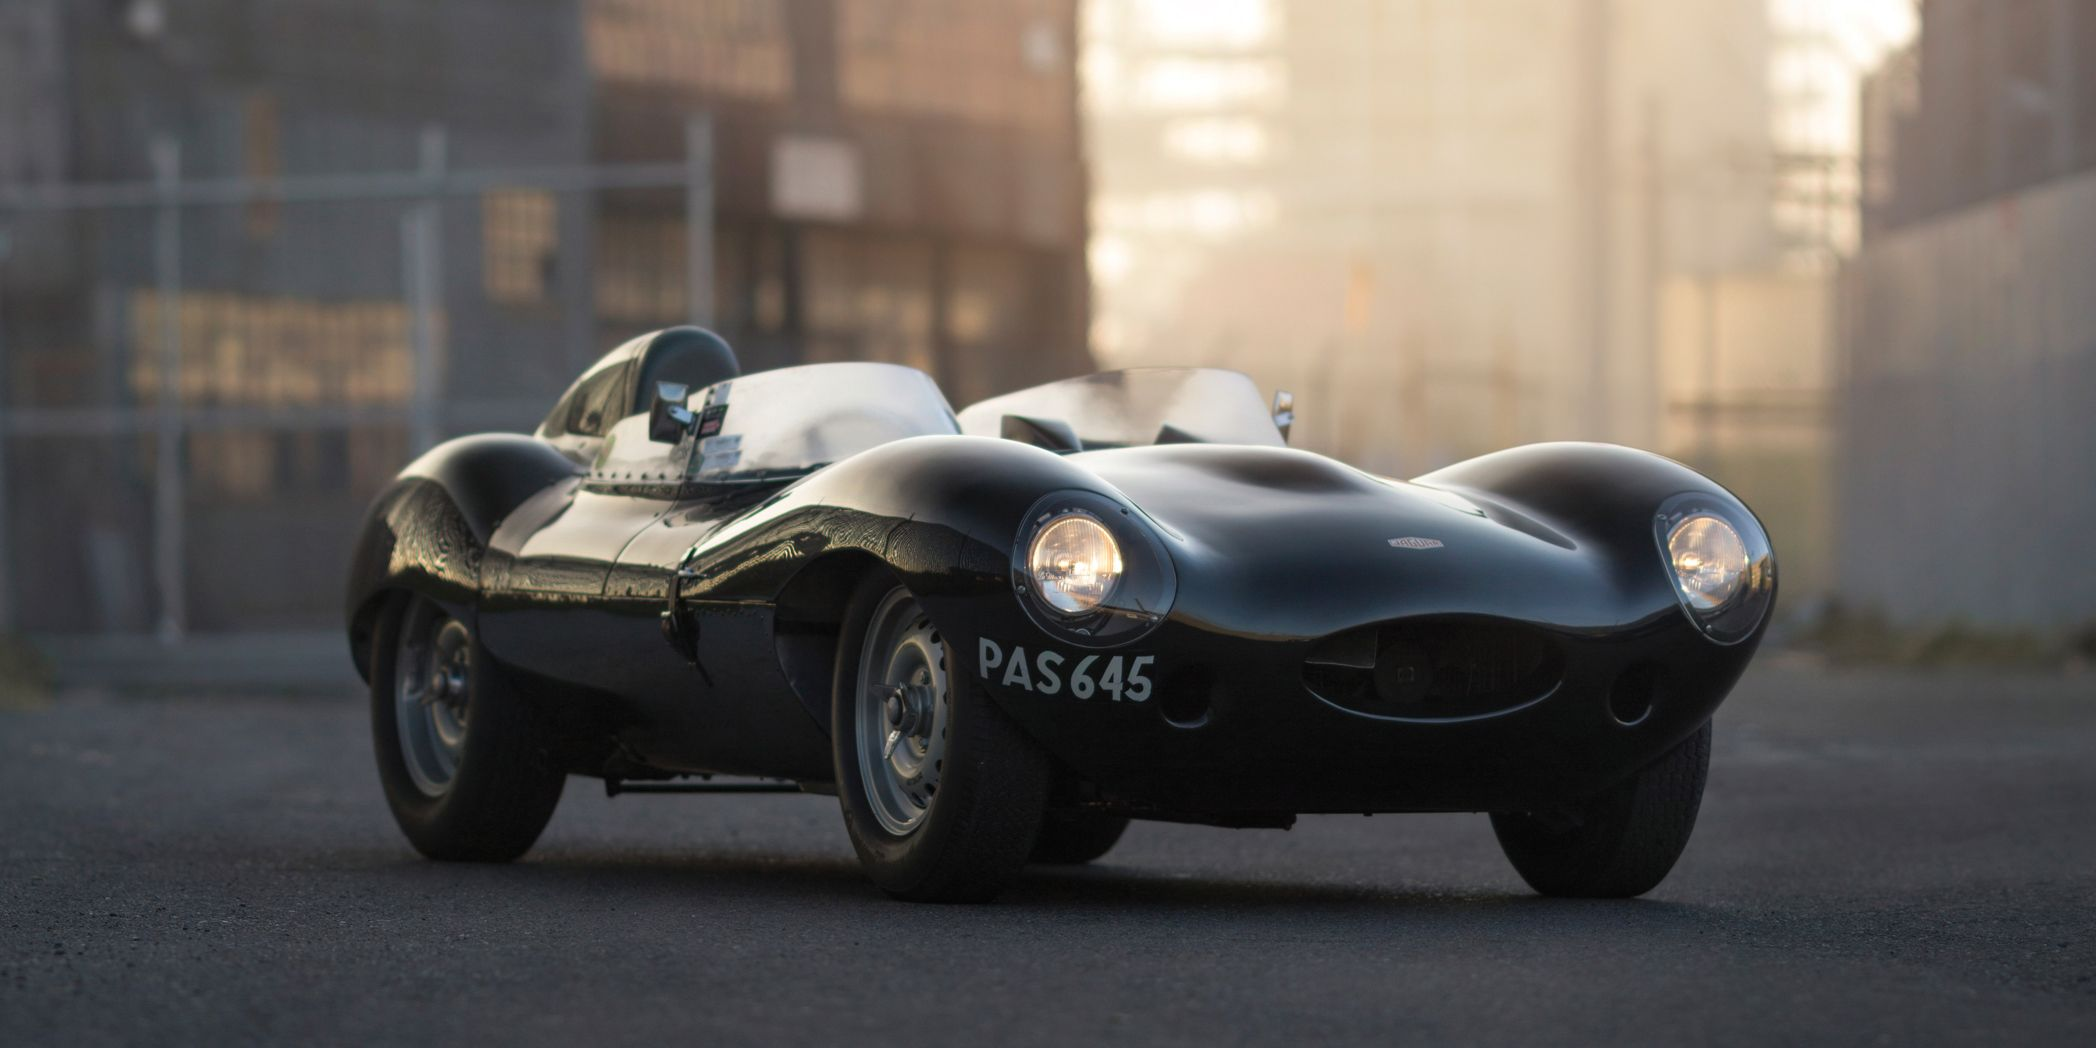 On March 14, this 1955 Jaguar D-Type will cross the block at the Amelia Island sale byRM Auctions.